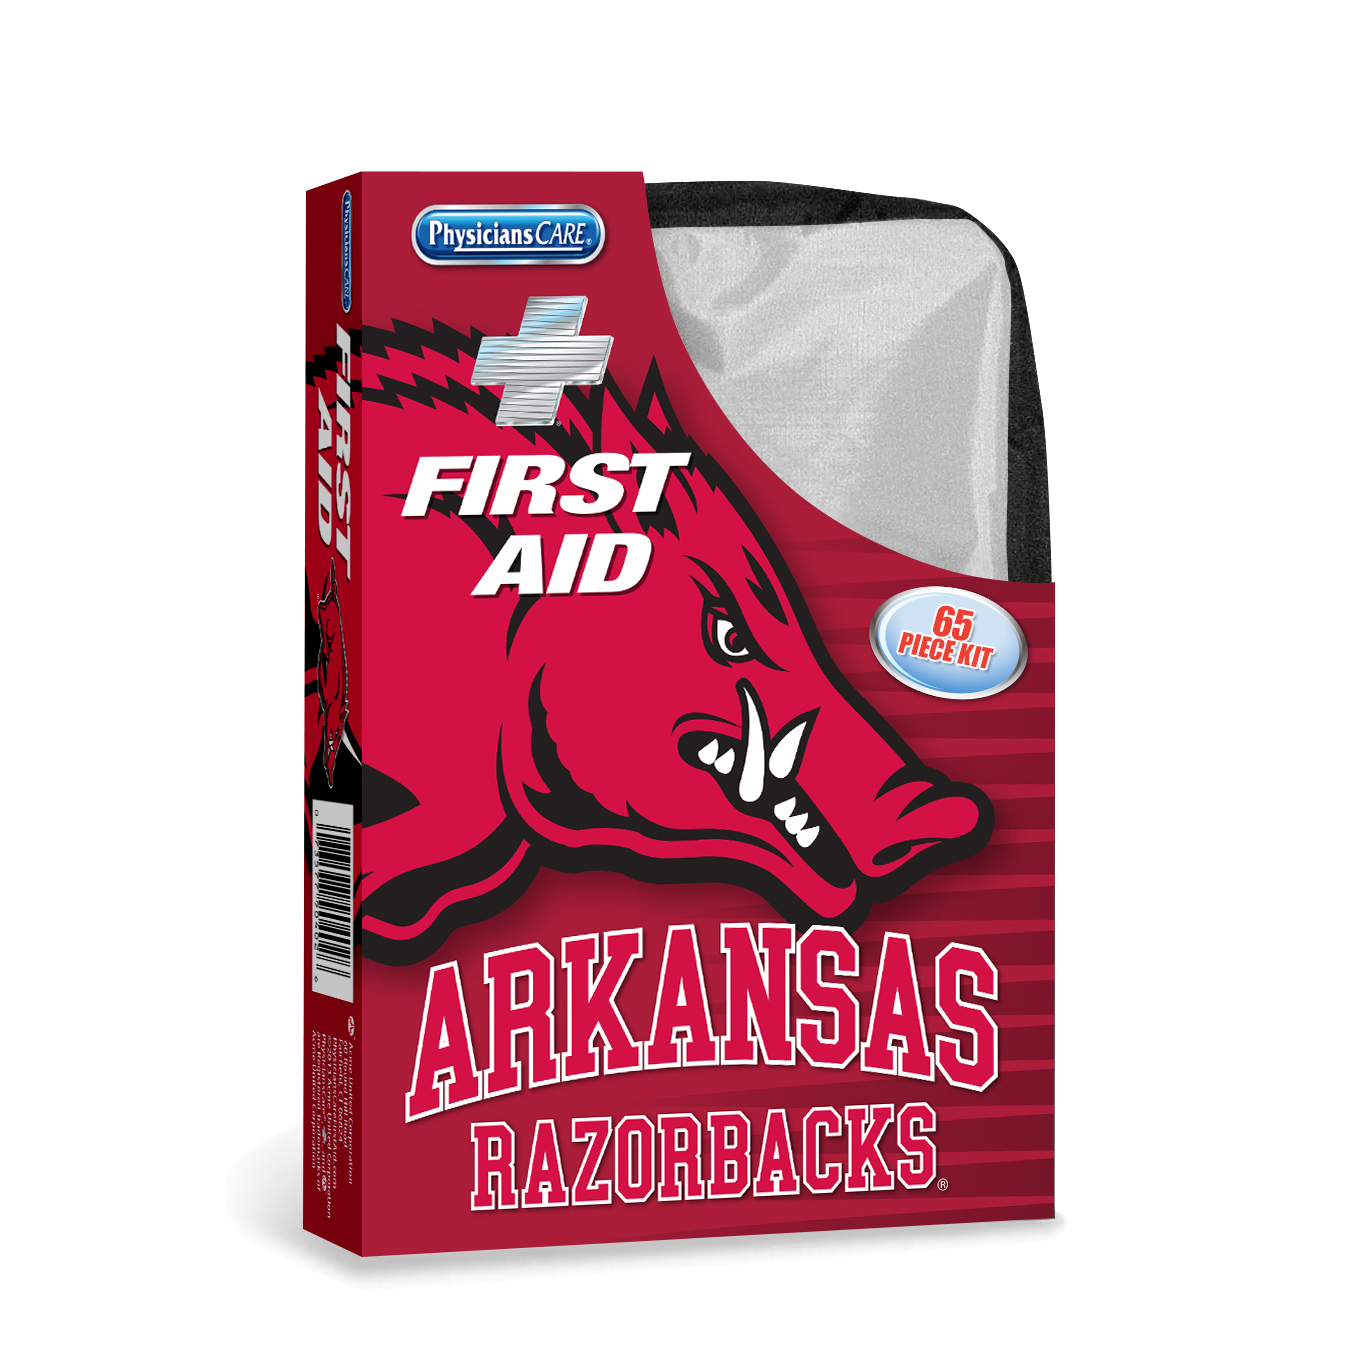 PhysiciansCare Arkansas Razorbacks First Aid Kit, Fabric Case, 65 Pieces, 10 Person